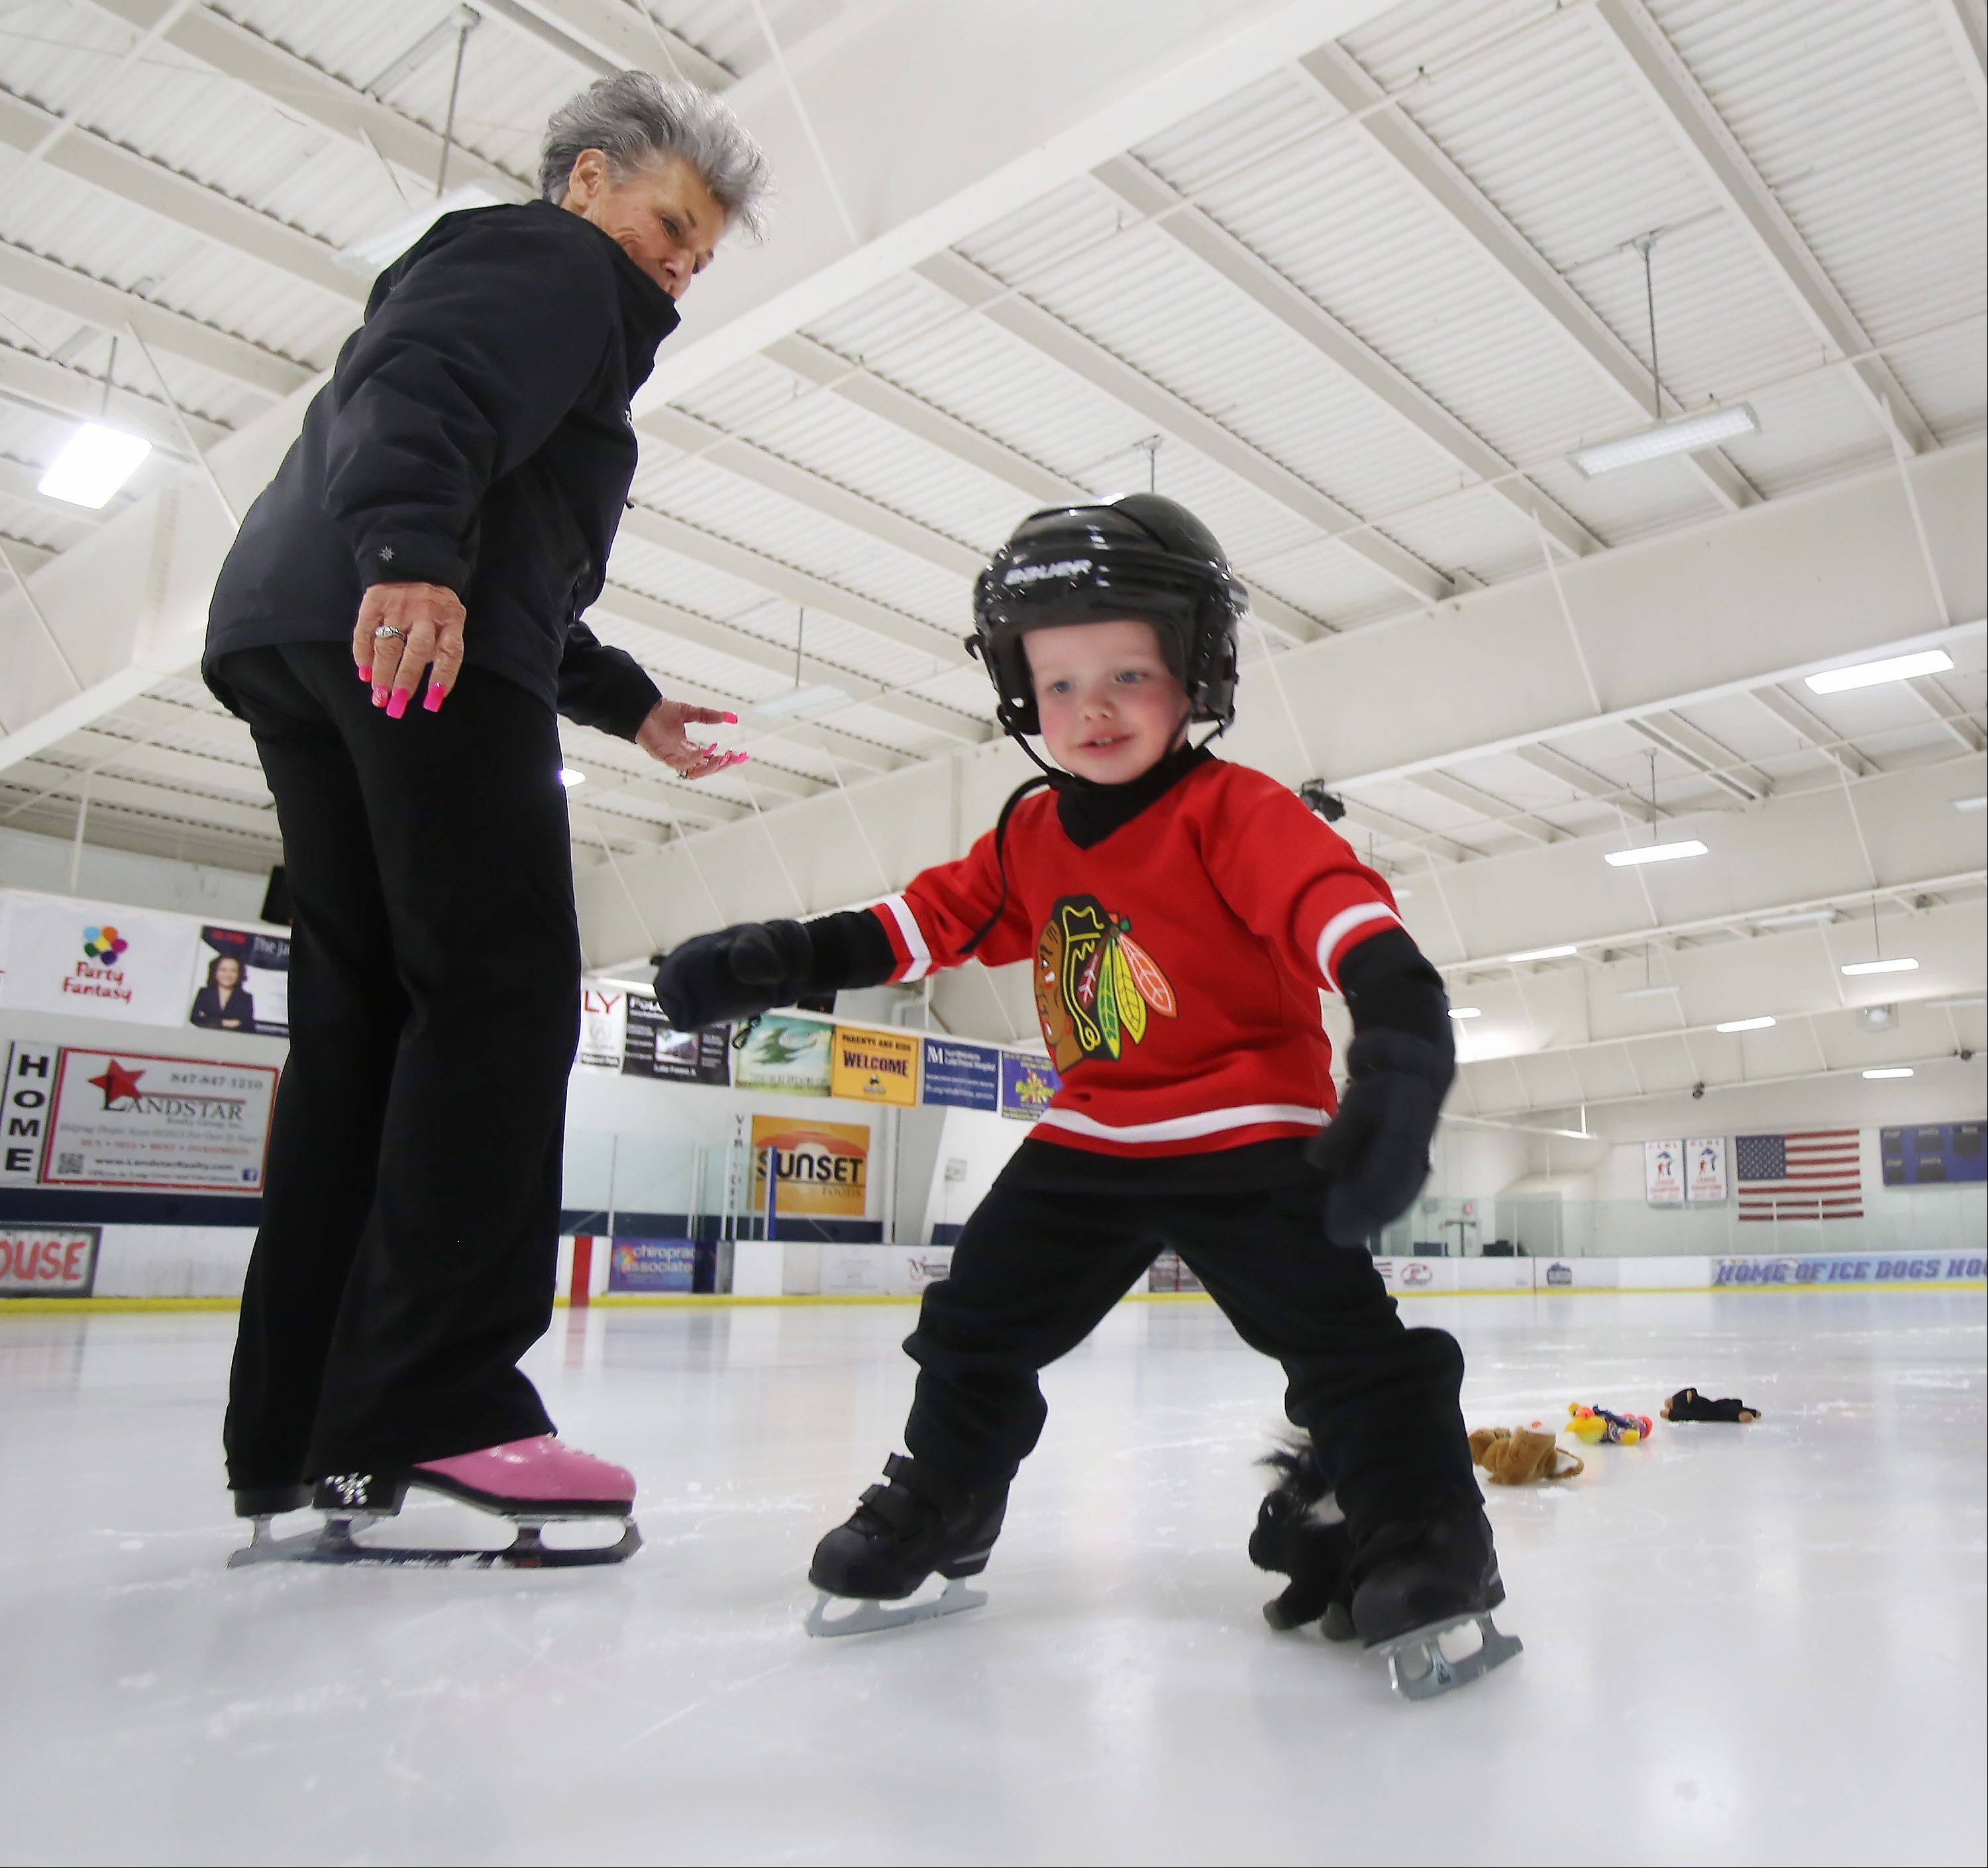 Ice skating teacher Karen Kay Lavris works with 2-year-old Ryan Shaffer, of Mettawa, at Glacier Ice Arena. Lavris has been at the arena since it opened 14 years ago.